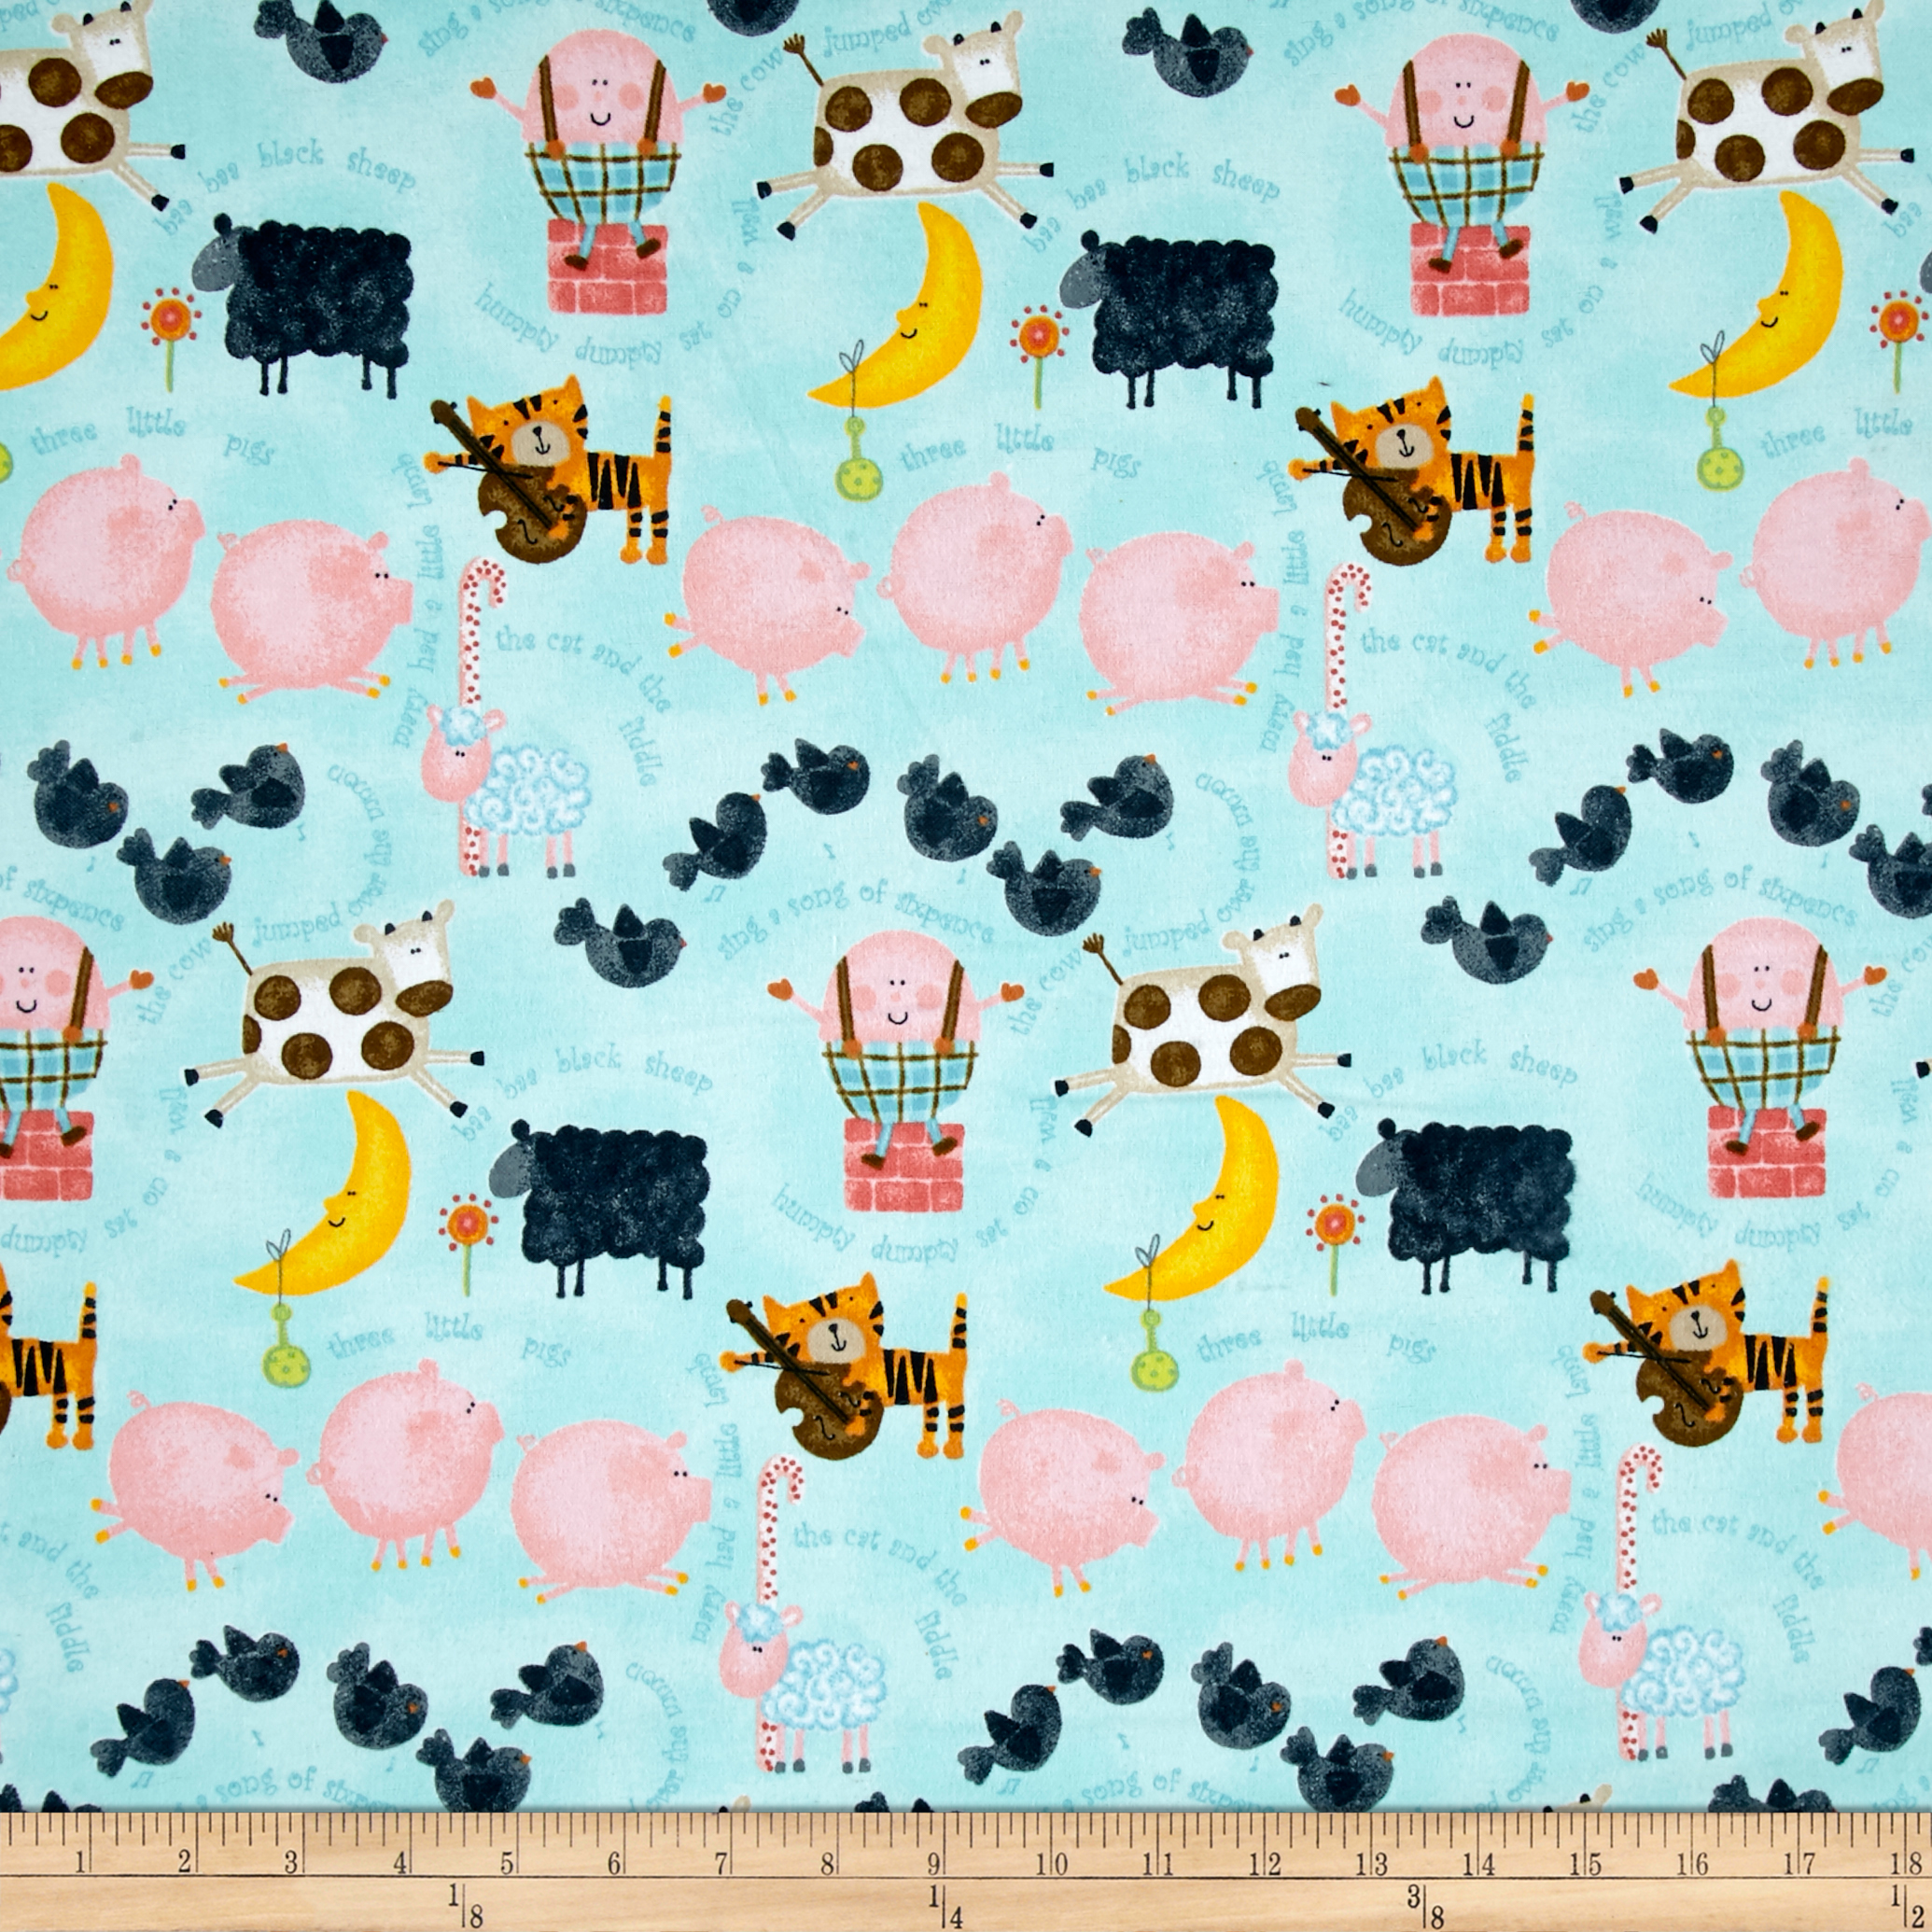 Comfy Flannel Nursery Rhyms Blue Fabric By The Yard by A. E. Nathan in USA